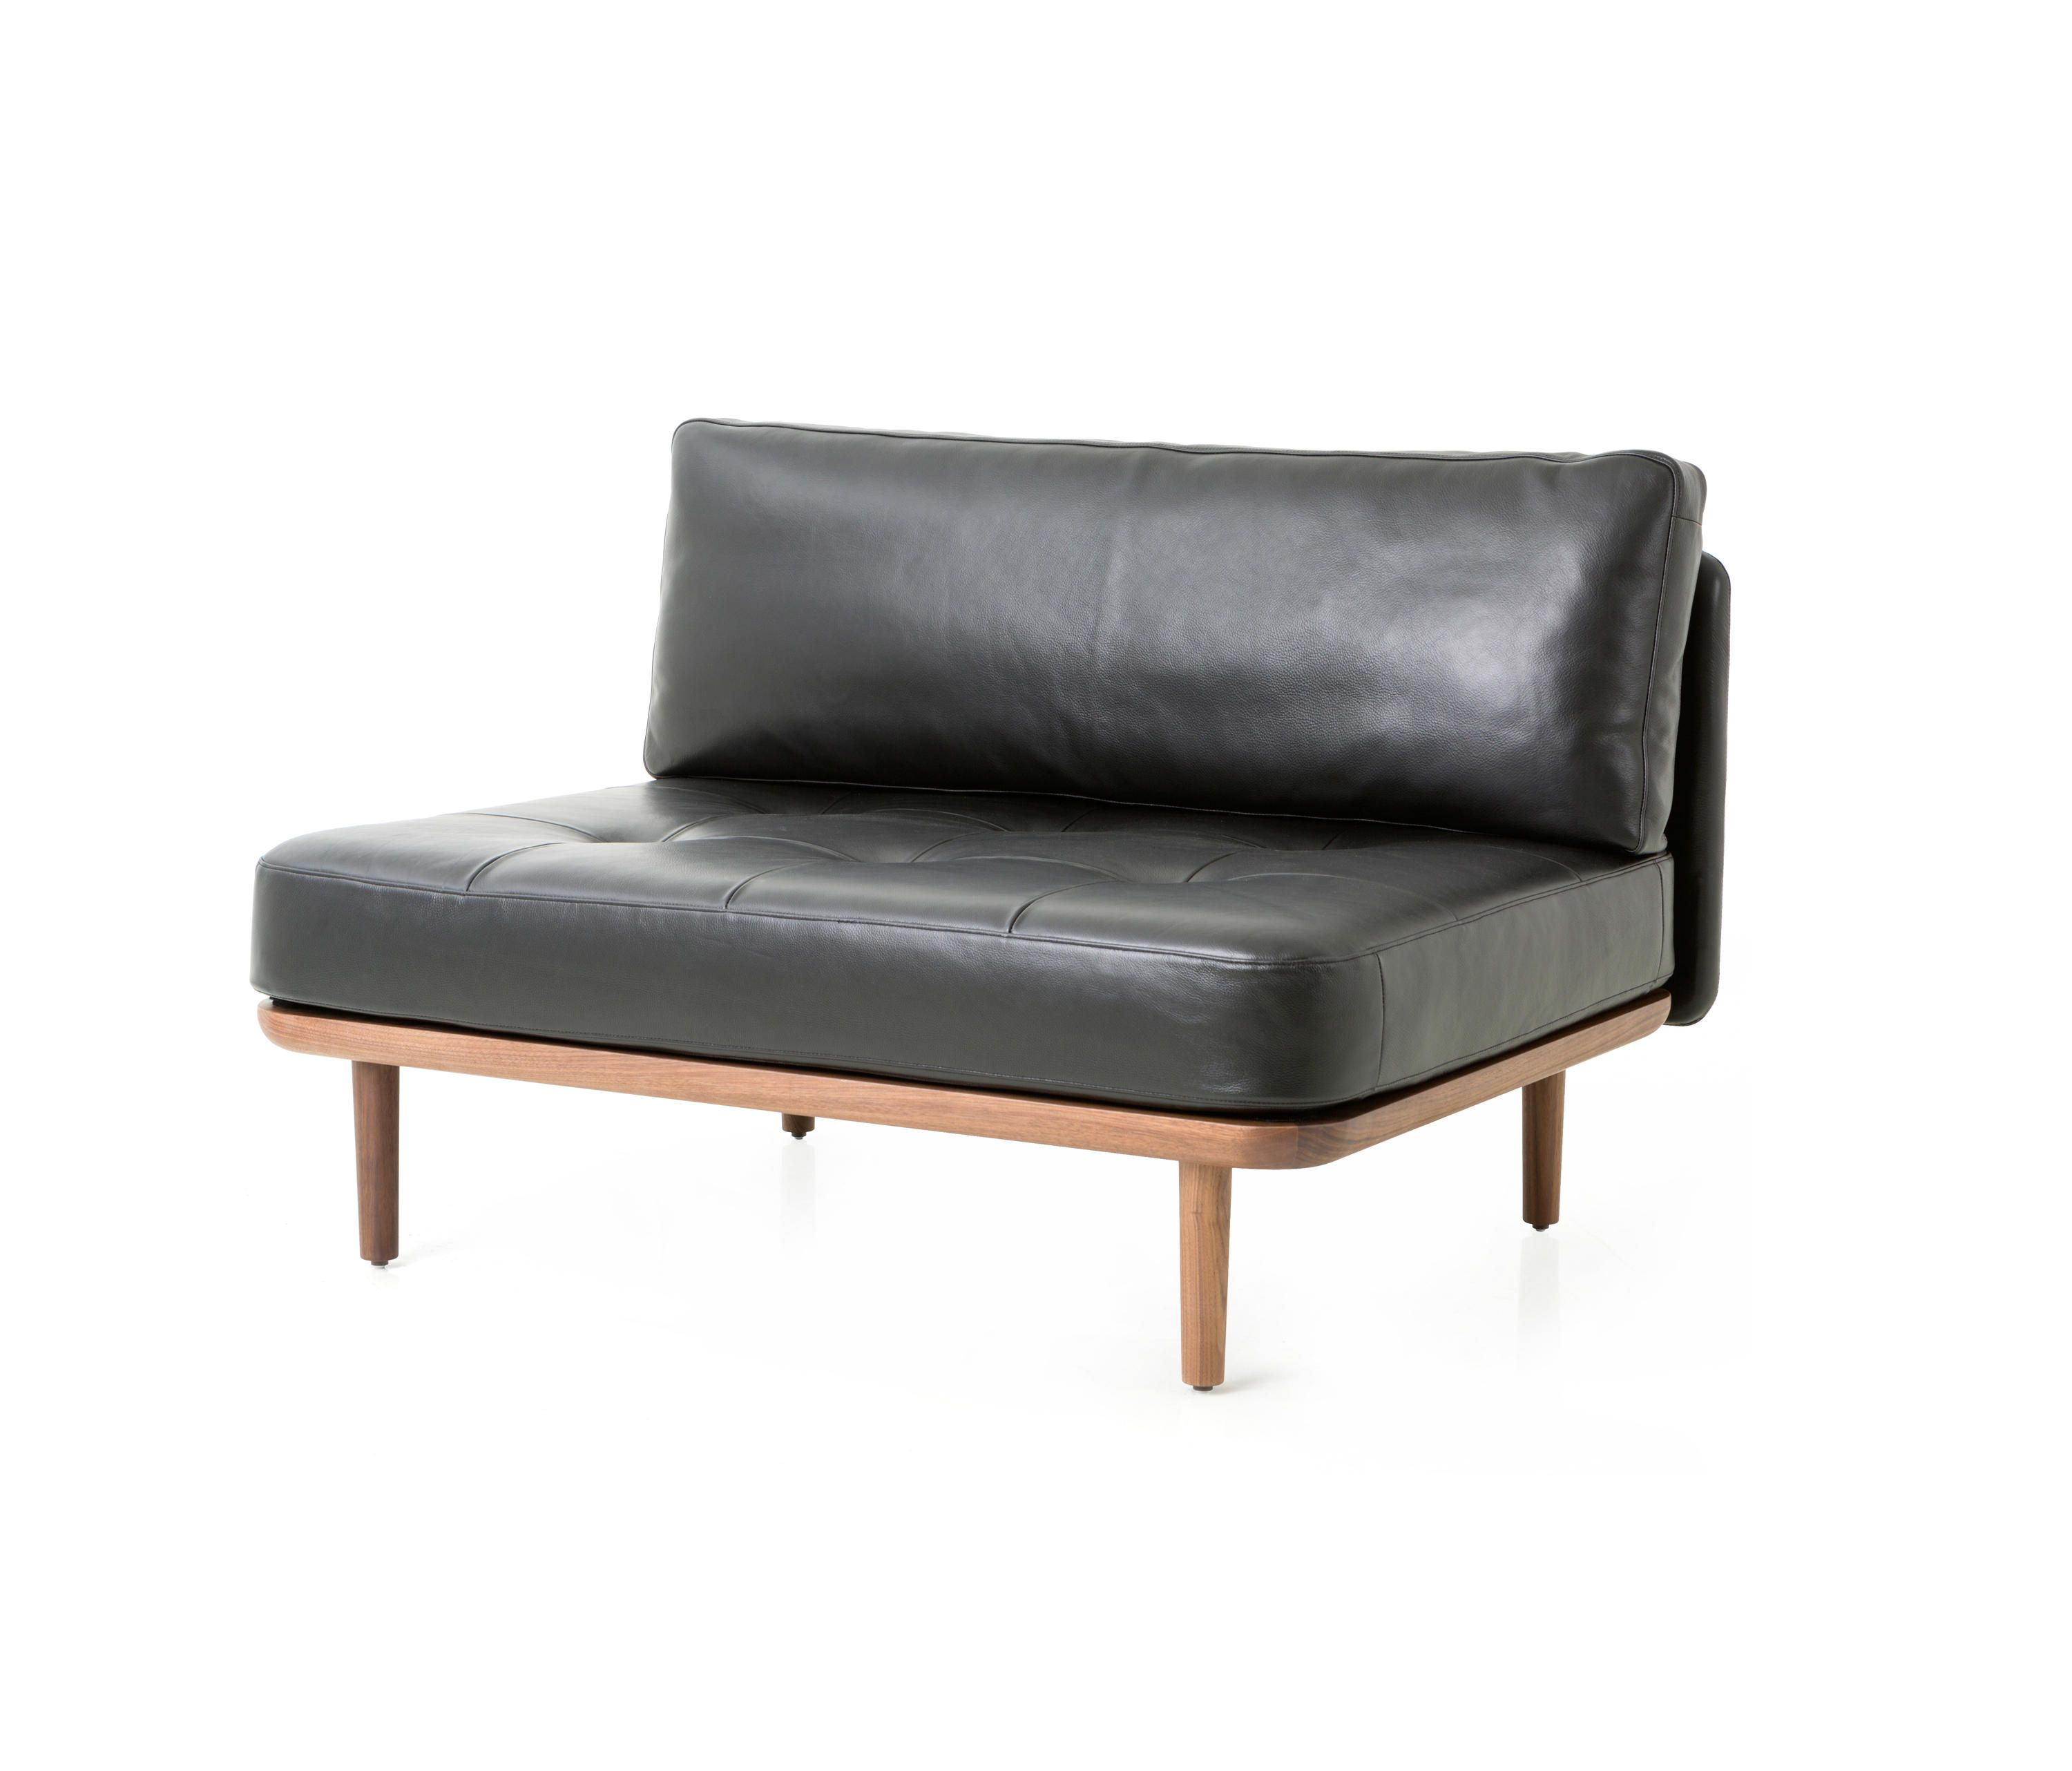 utility sofa one side designer lounge sofas from stellar works